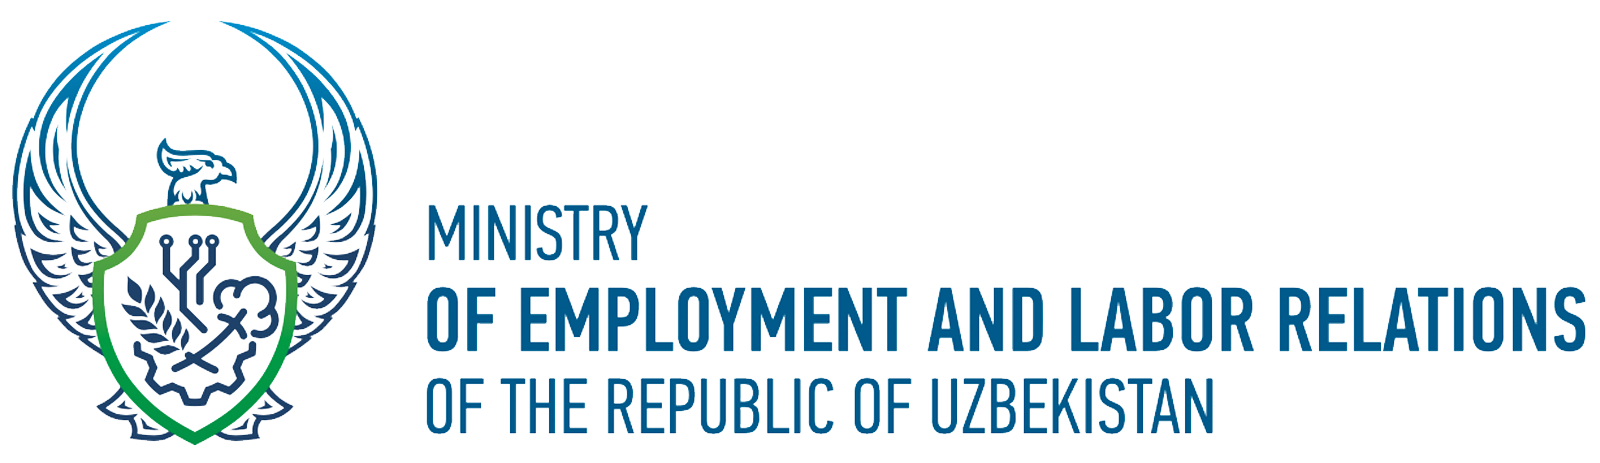 Ministry of Employment and Labour Relations of the Republic of Uzbekistan